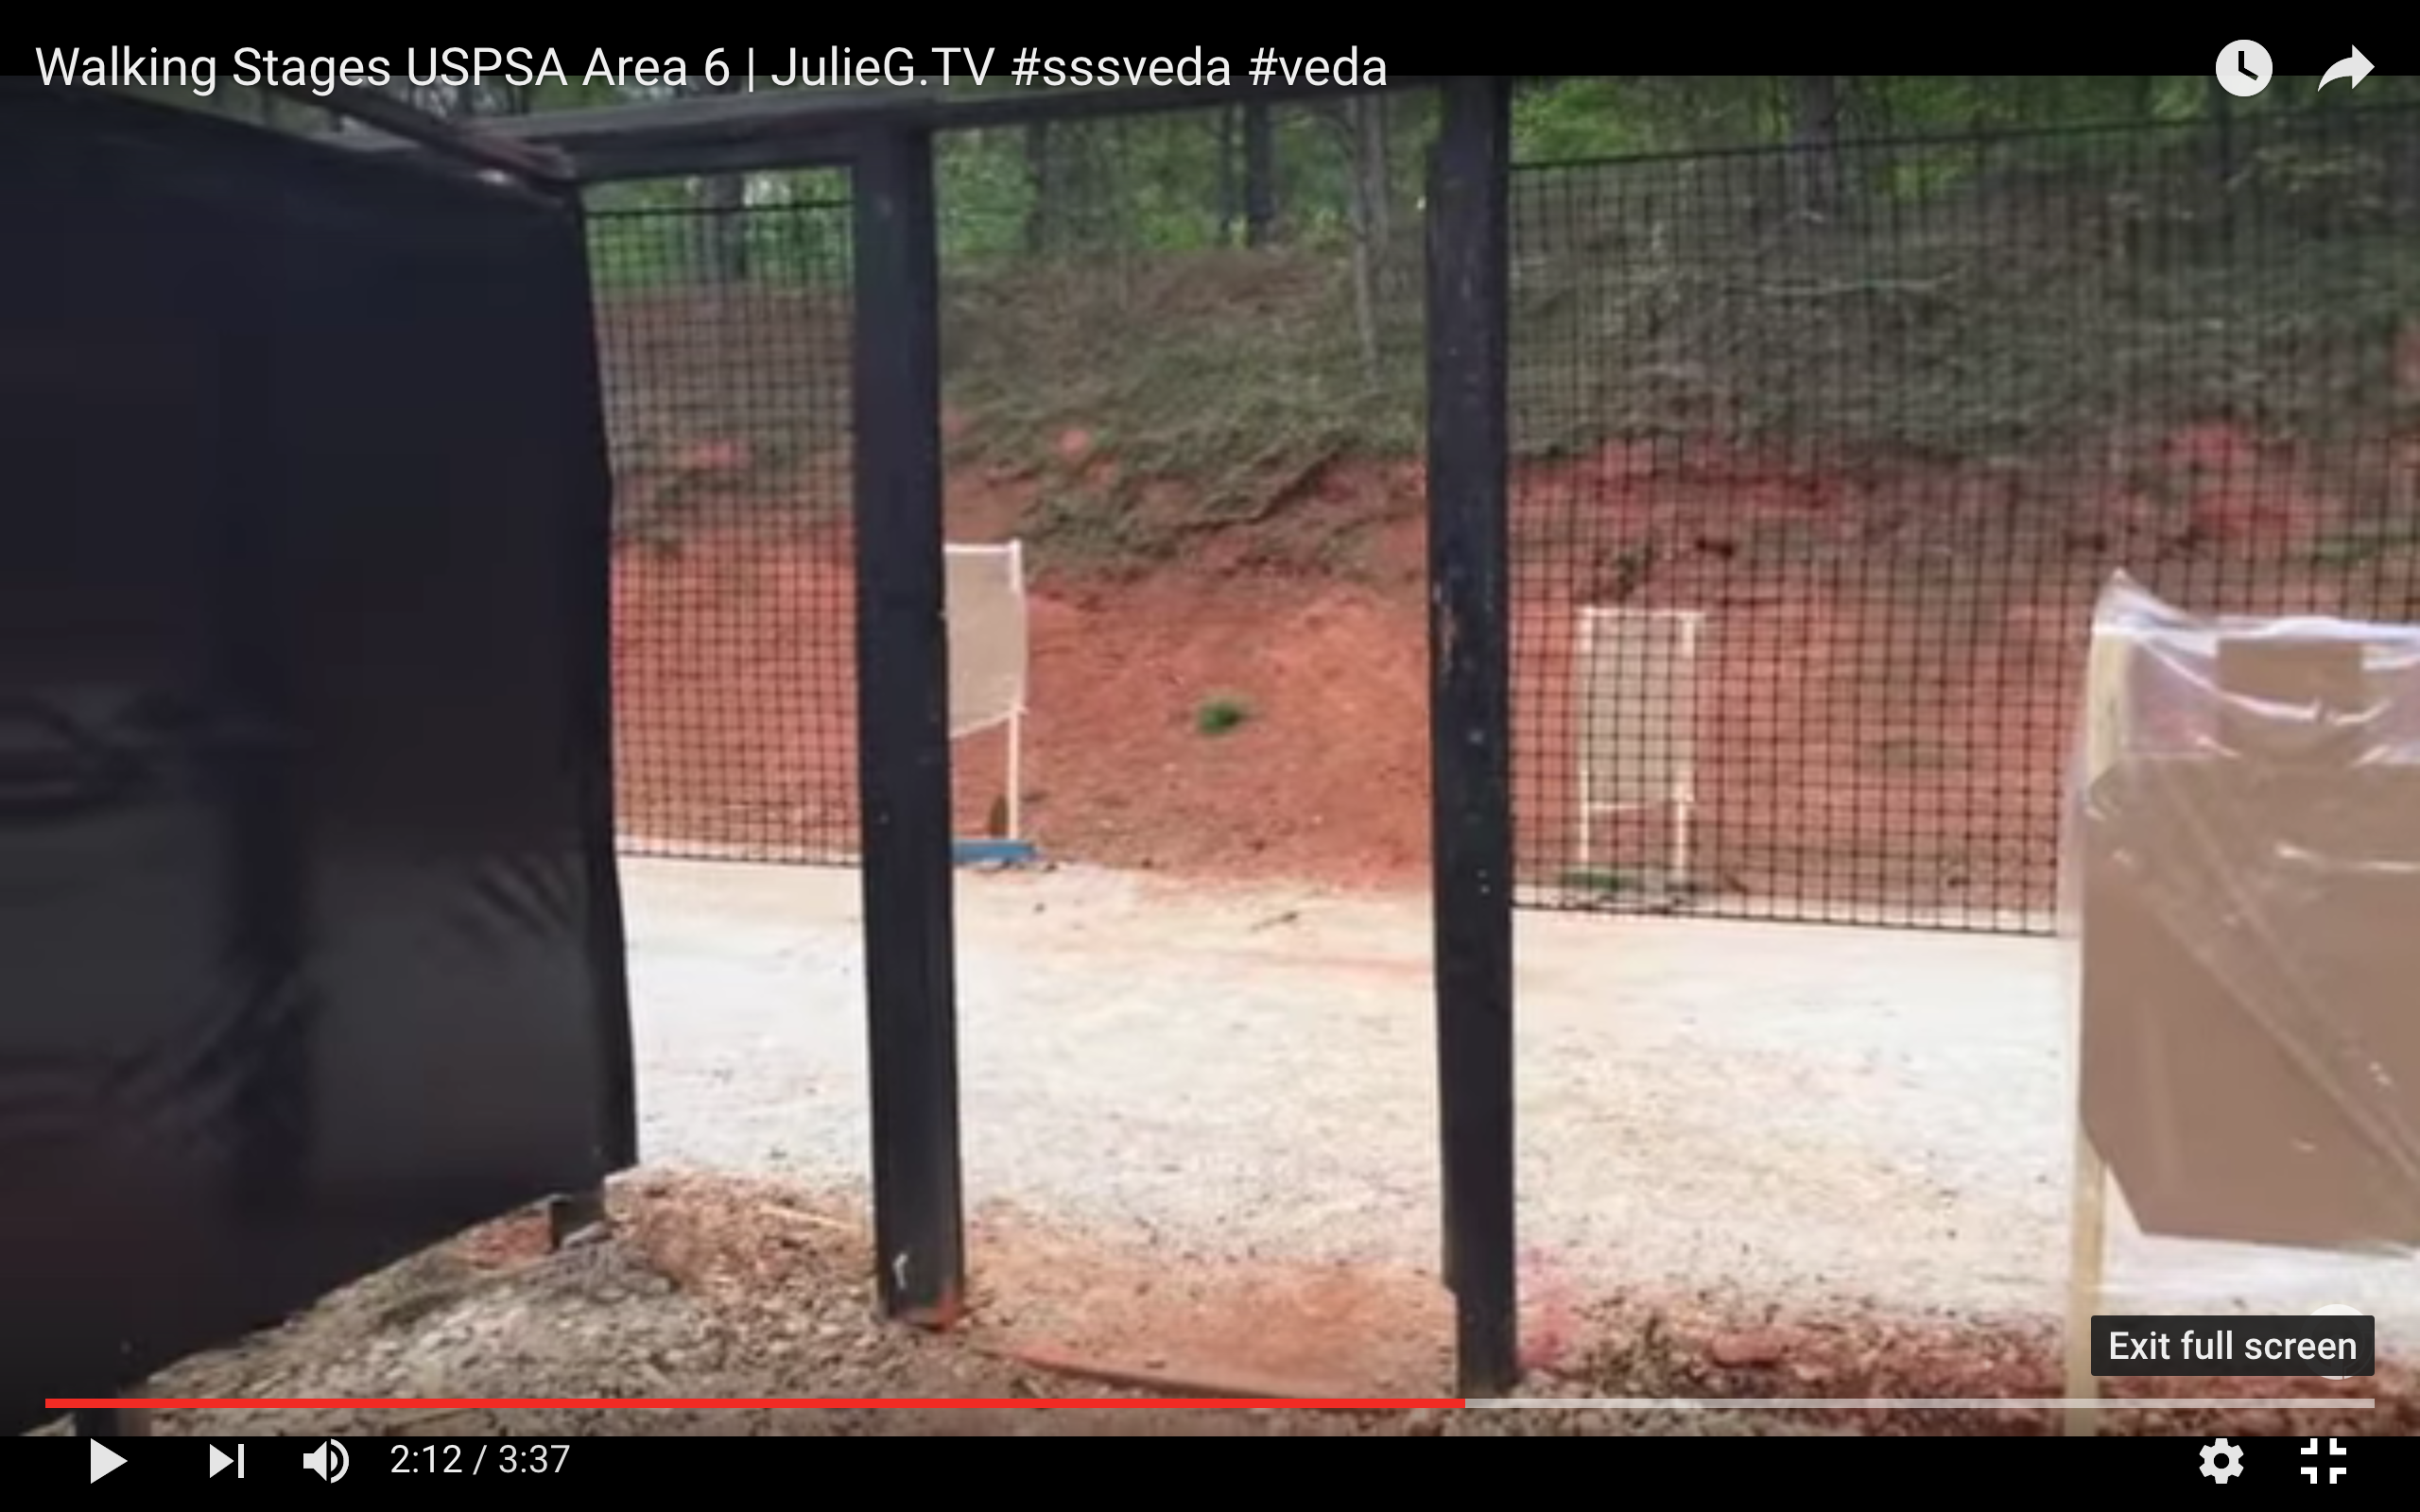 Walking the stages at USPSA Area 6